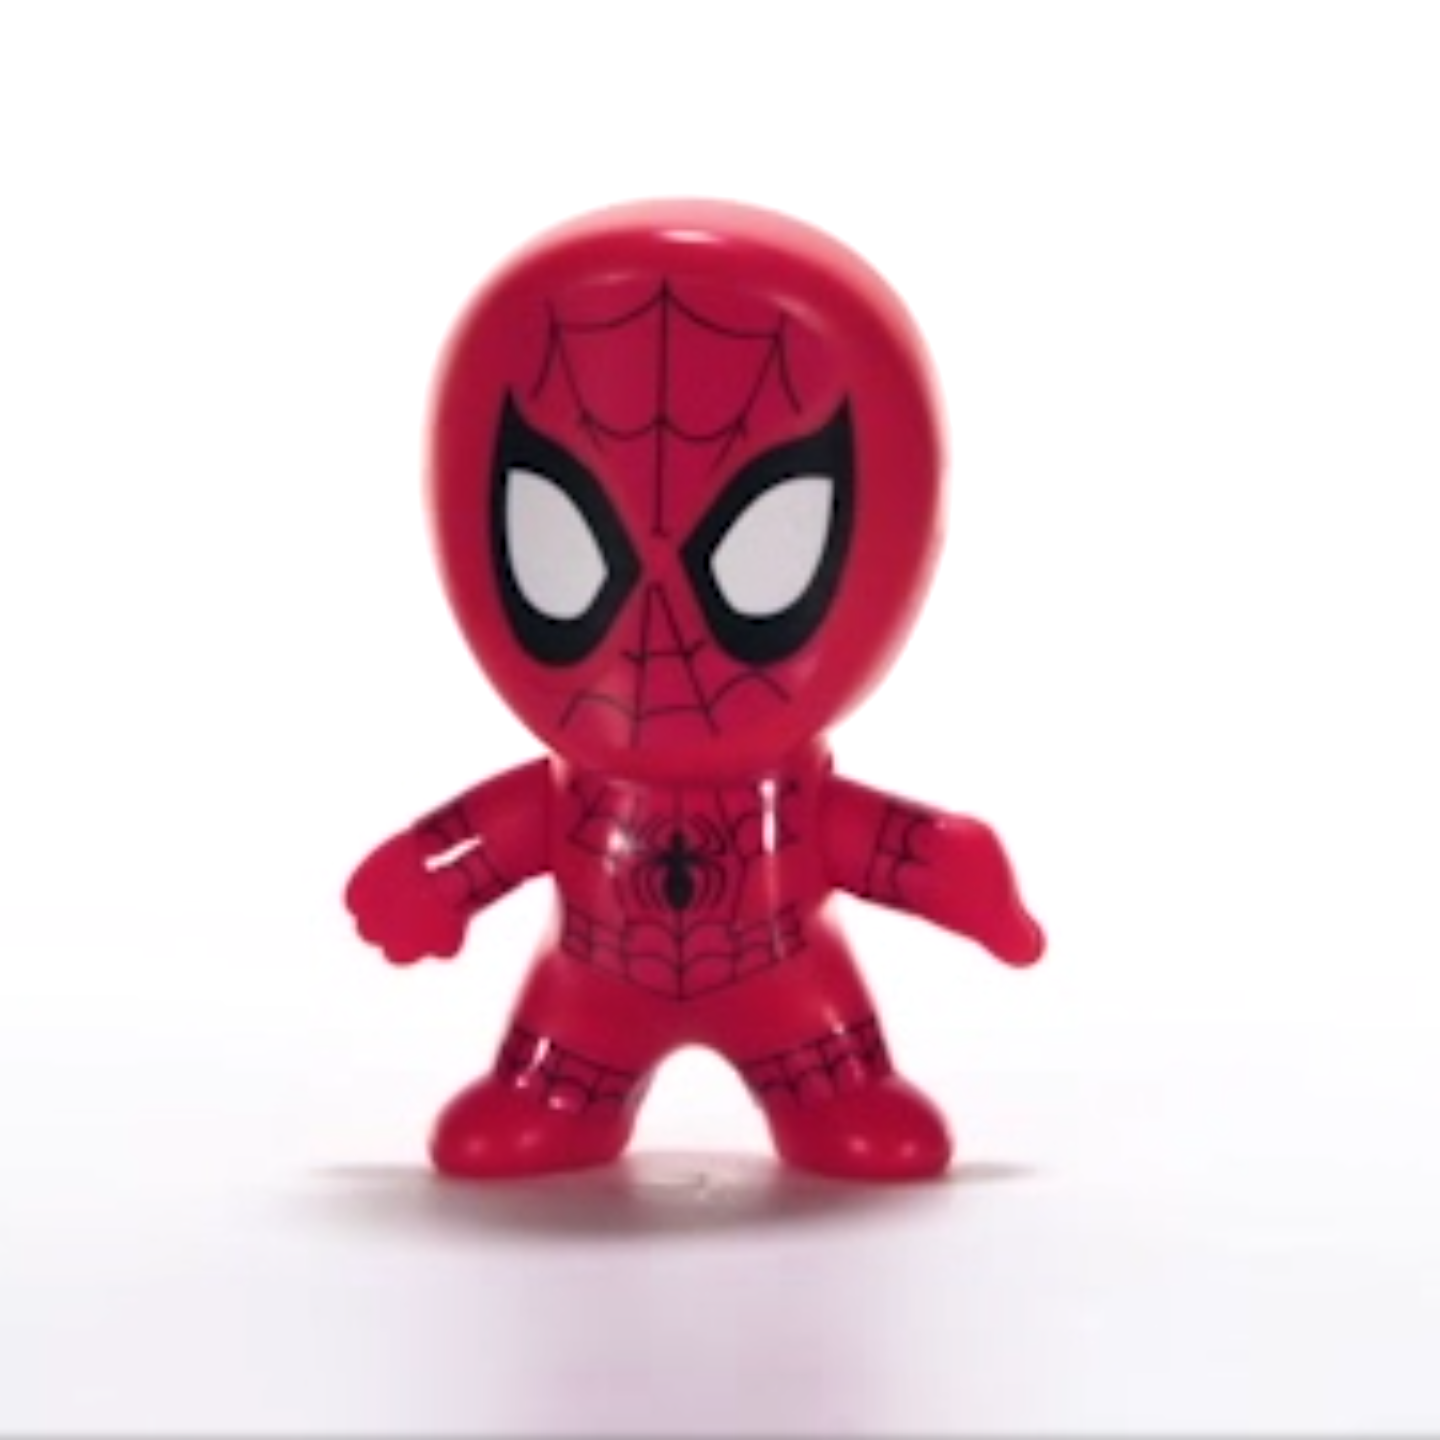 McDonalds 2019 Marvel Avengers Happy Meal Toy - Brand New in Sealed Package #1 Spider-Gwen/Spider-Man